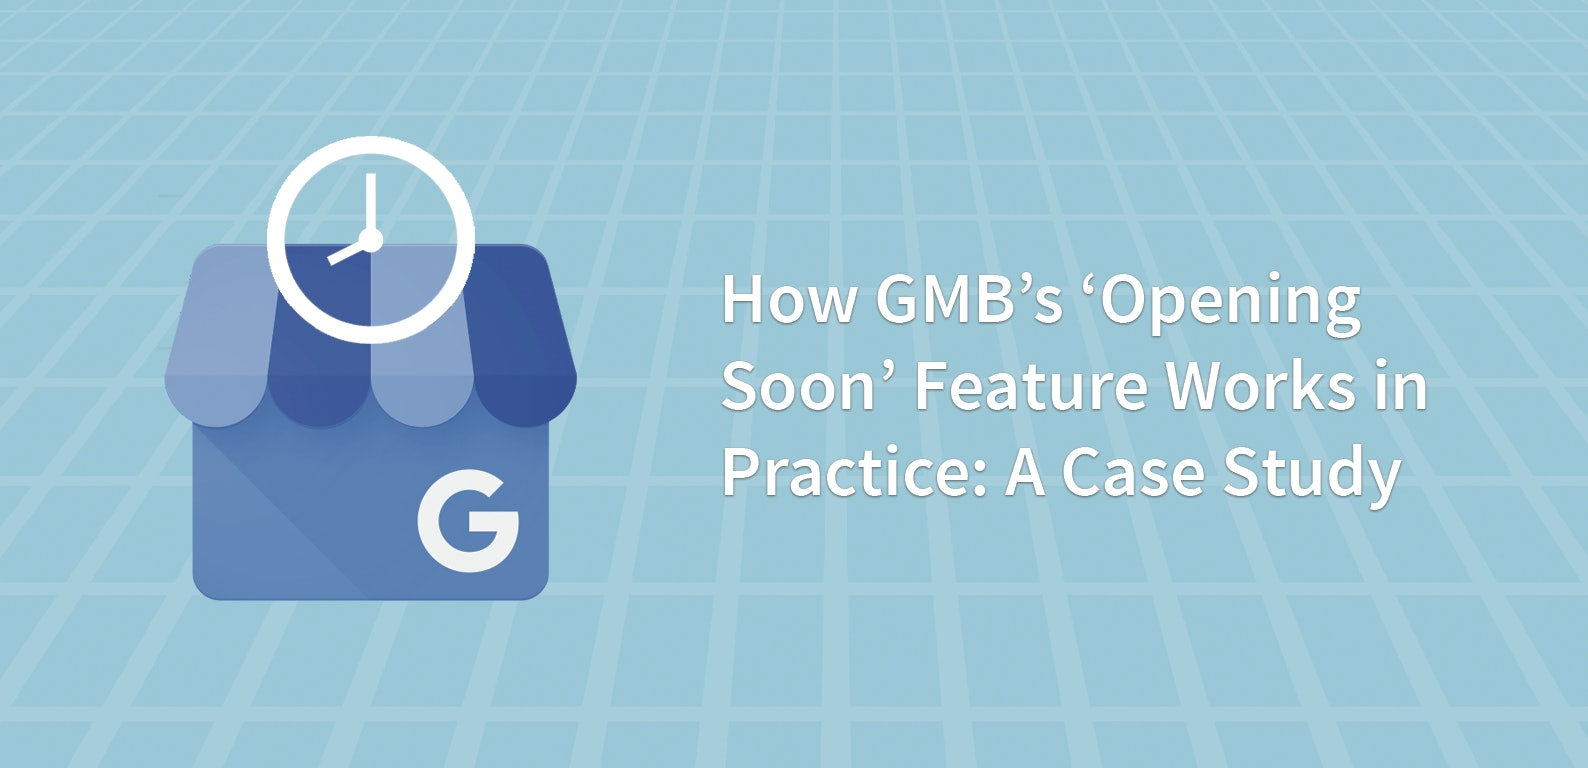 How GMB's 'Opening Soon' Feature Works in Practice: A Case Study